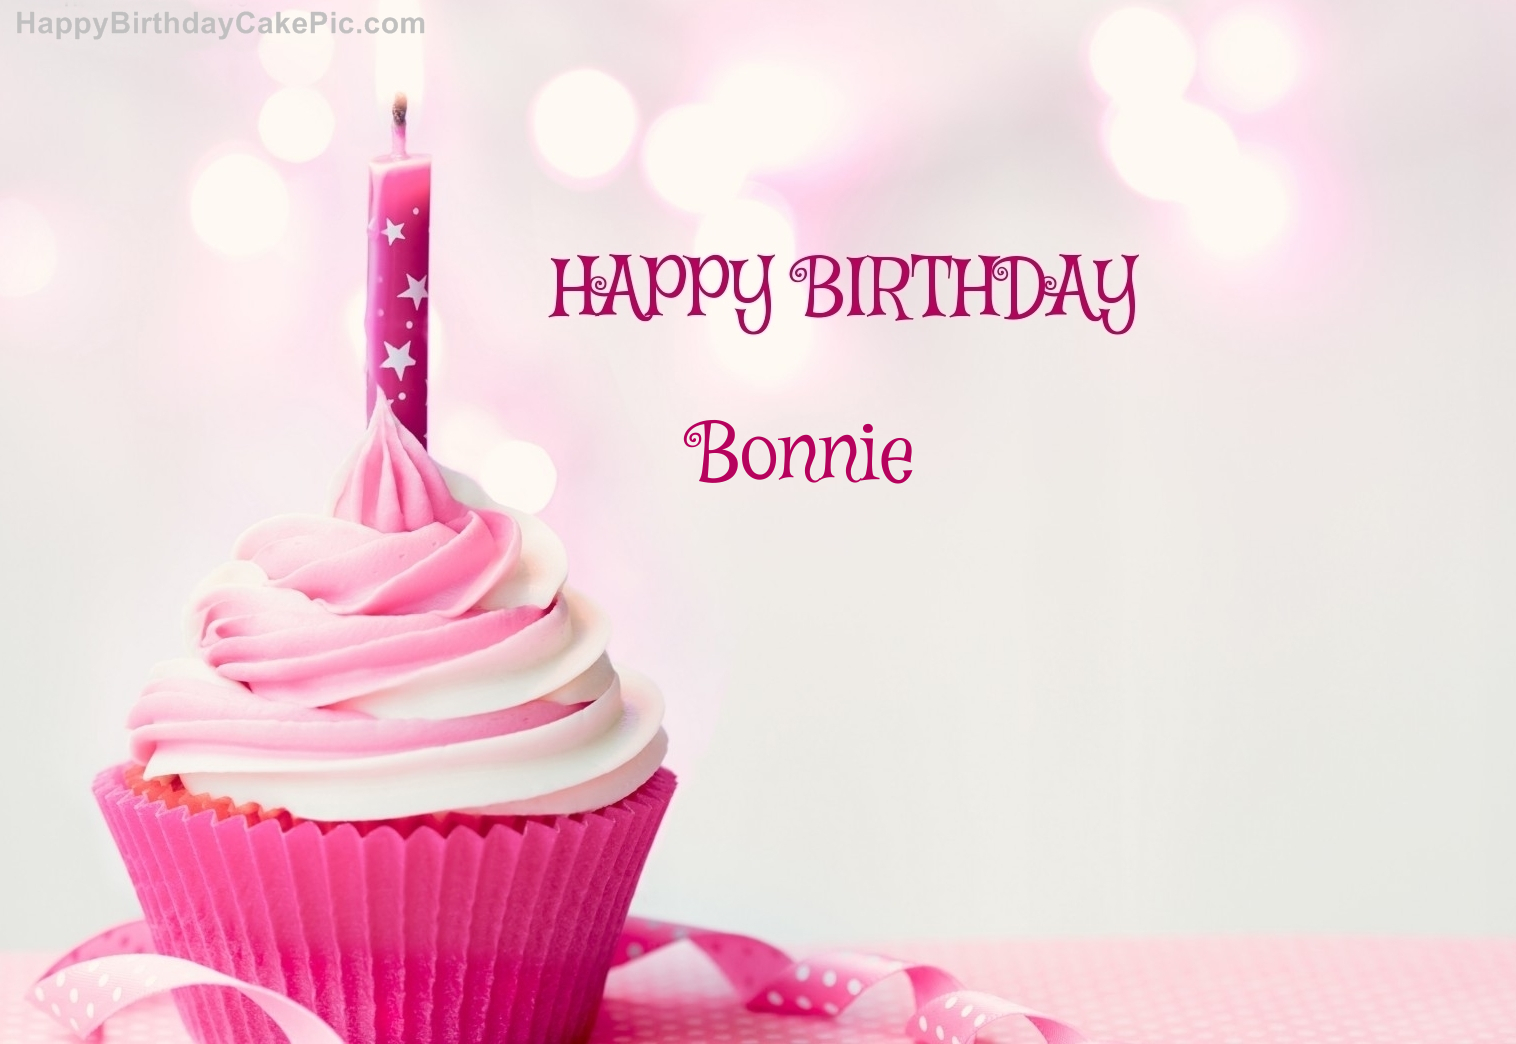 Happy birthday cupcake candle pink cake for bonnie write name on happy birthday cupcake candle pink cake publicscrutiny Gallery